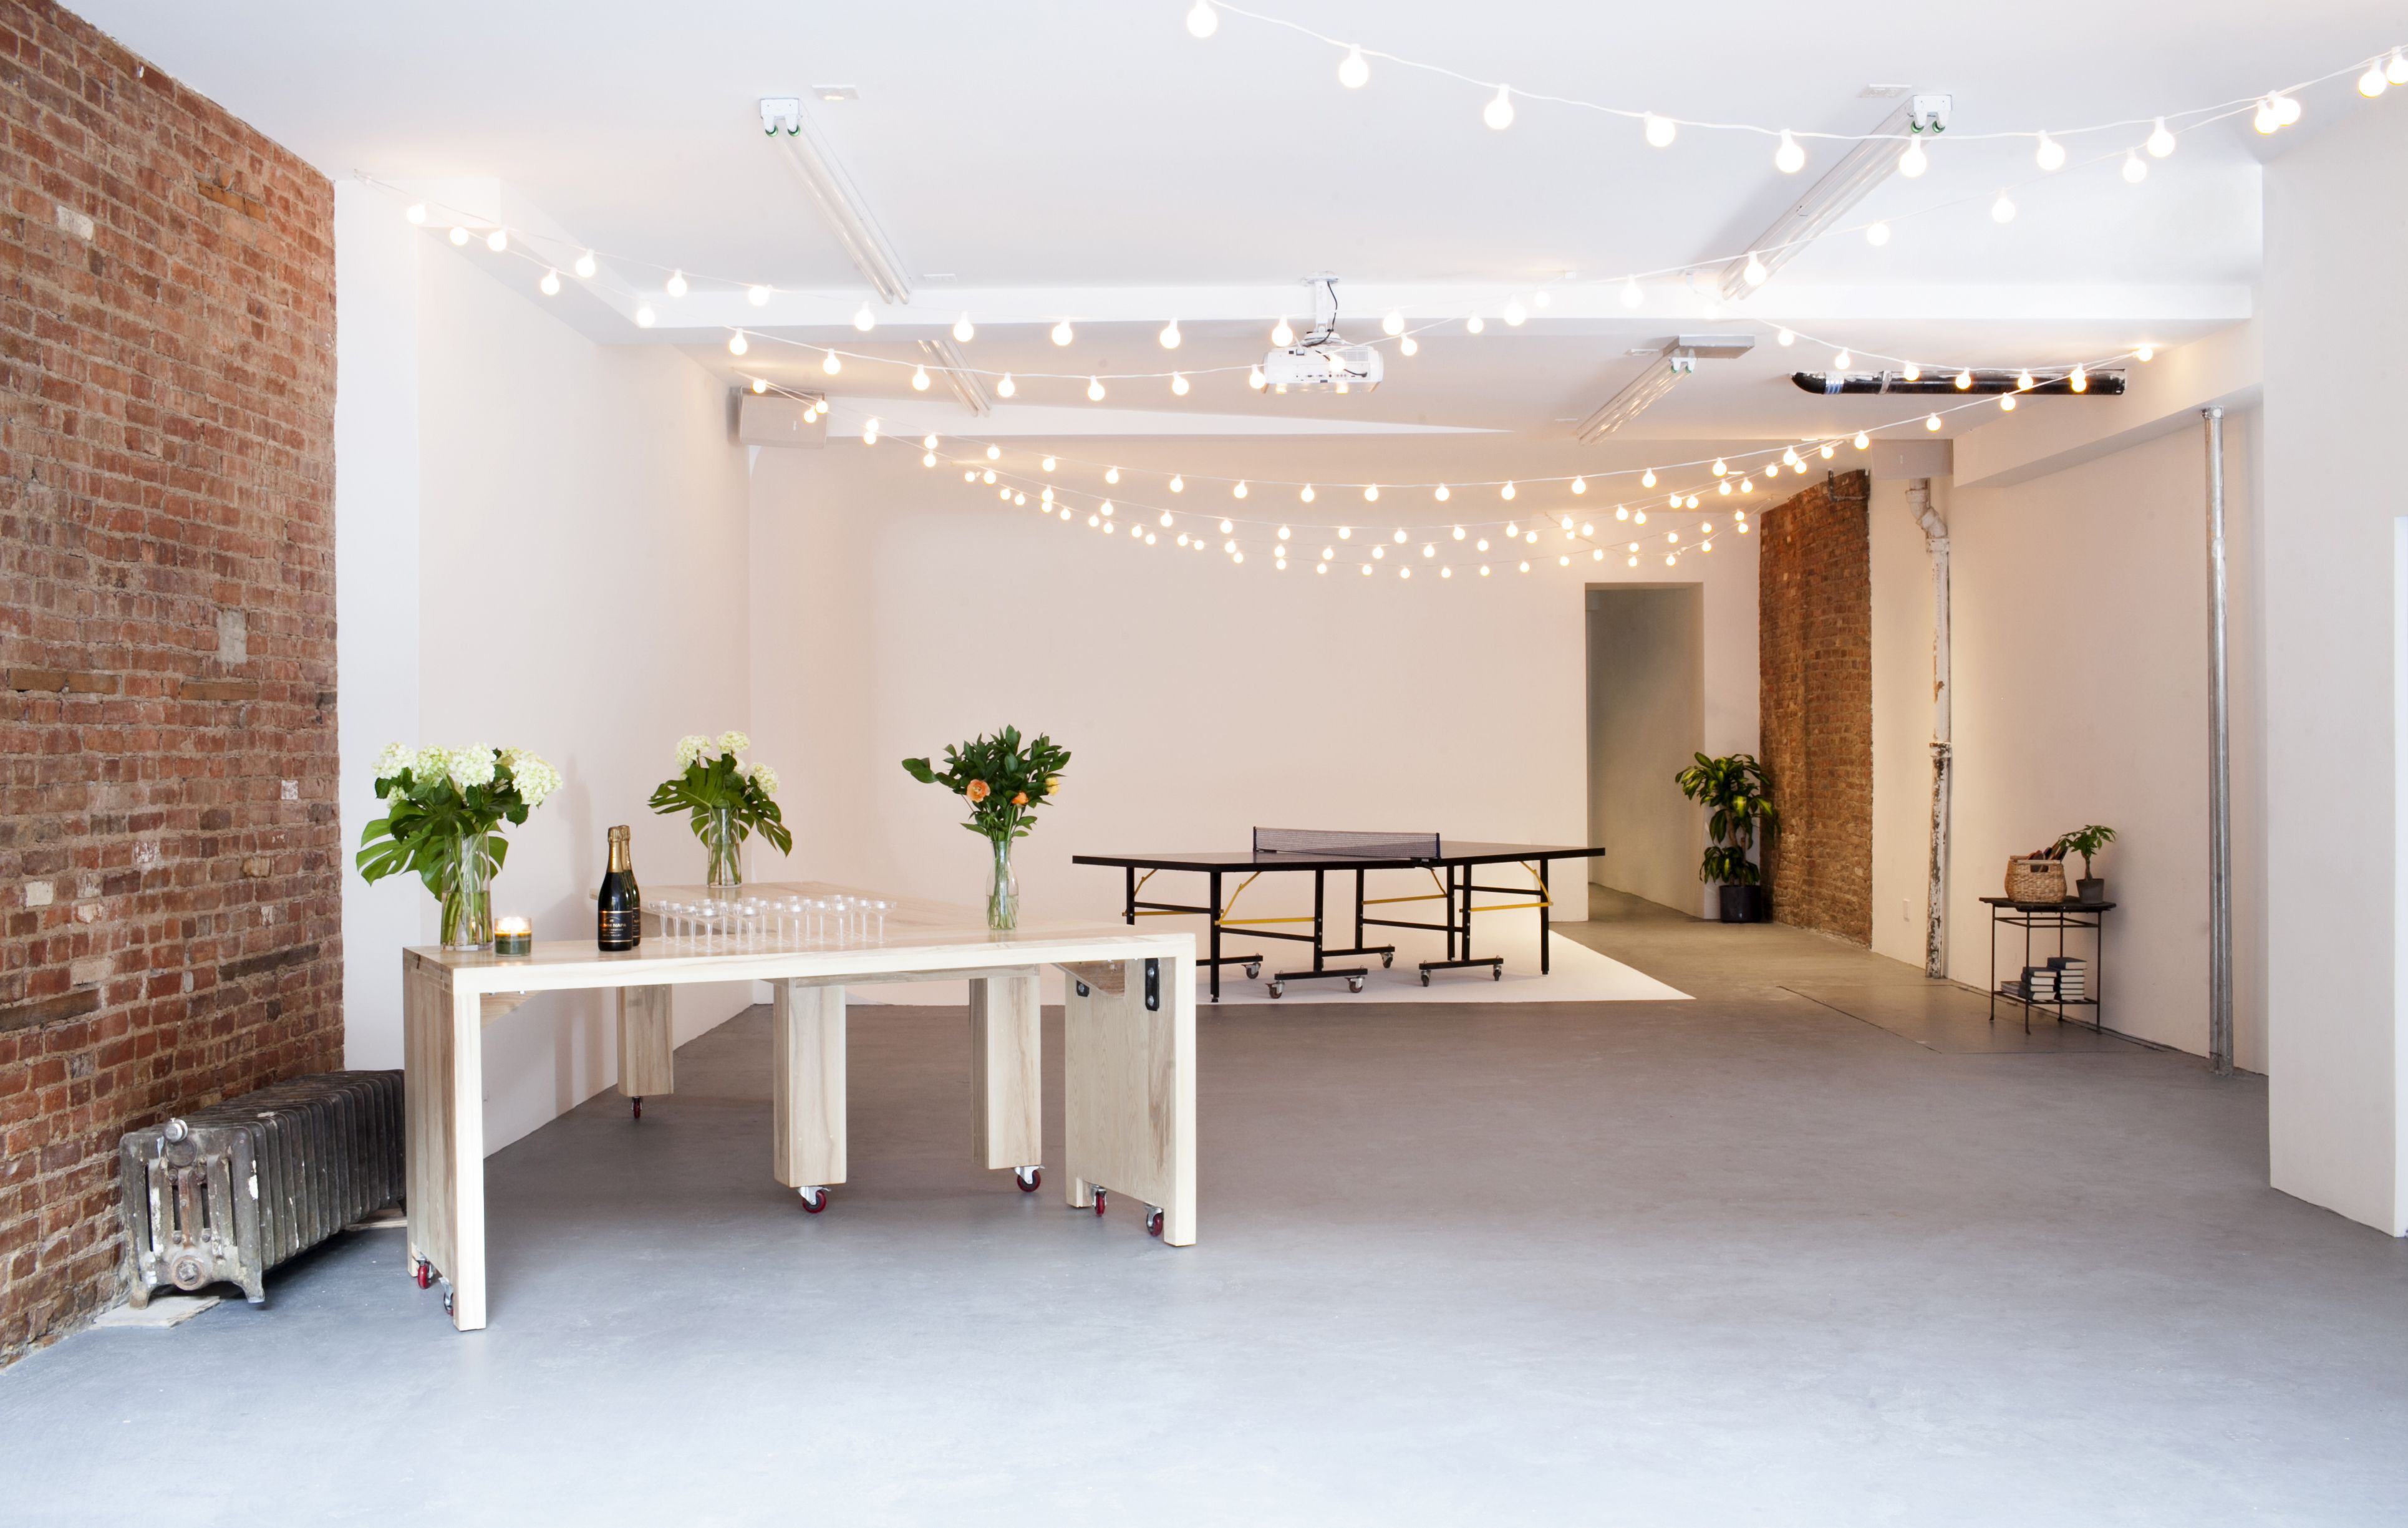 Ludlow Studios in NYC. Pop up shop, Private dining room